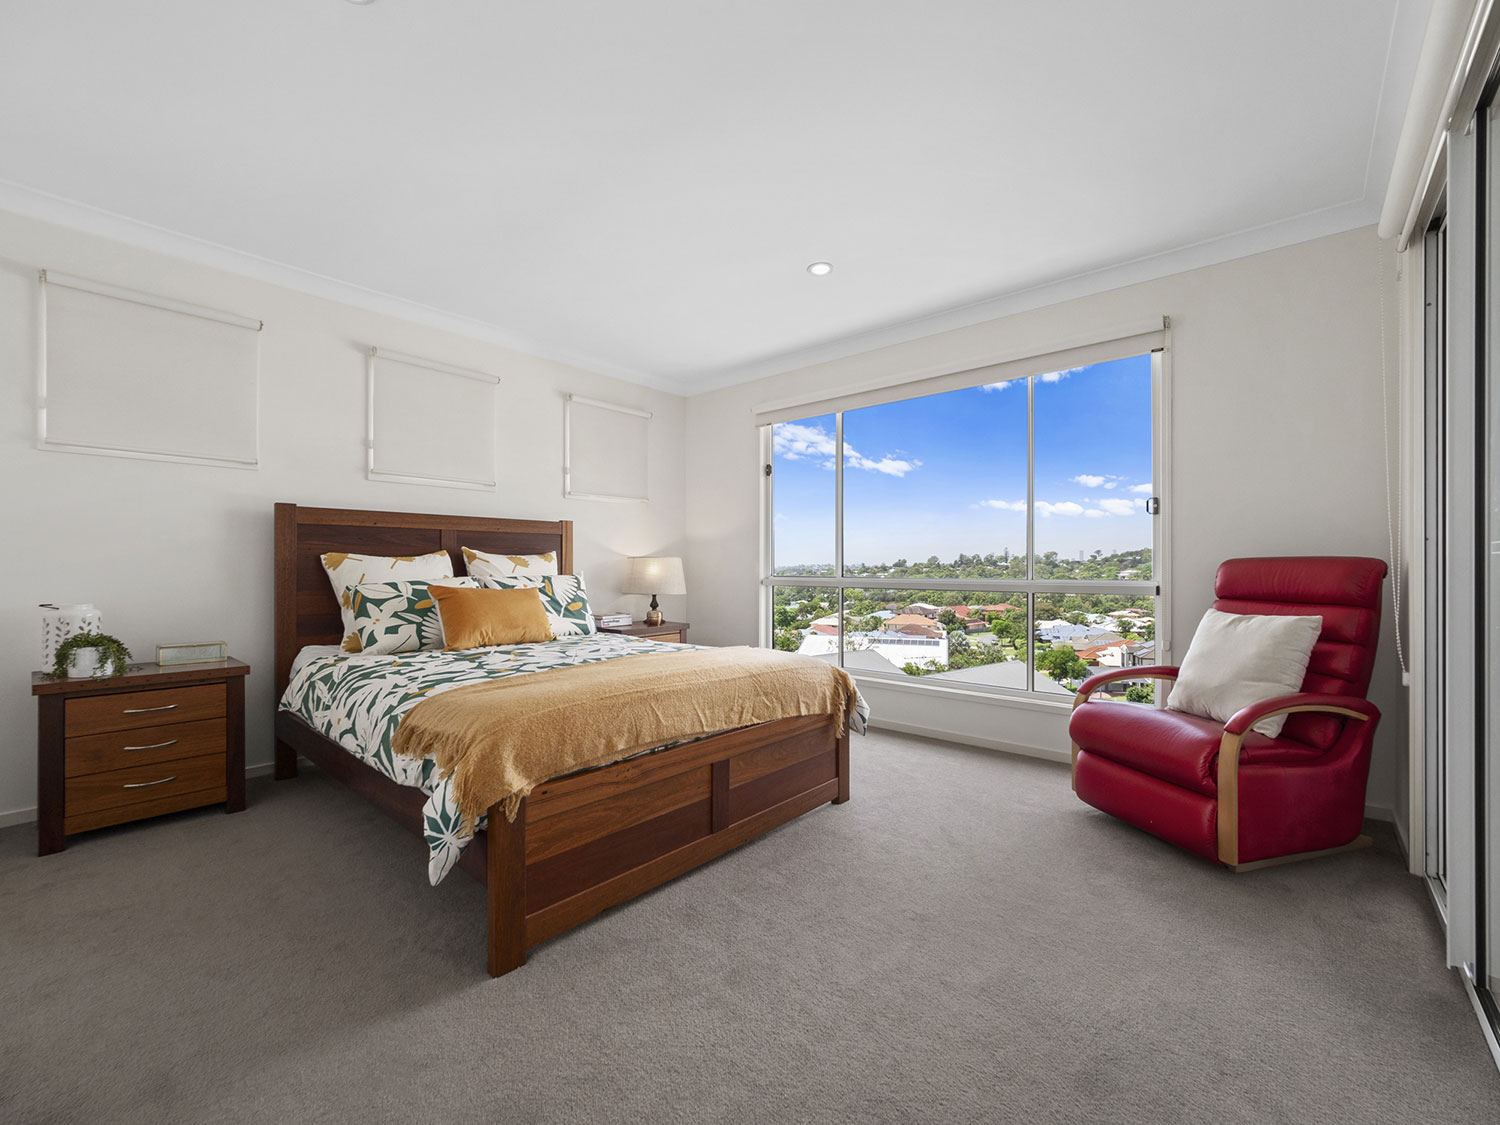 Capturing the master bedroom of the home for sale at Mitchelton